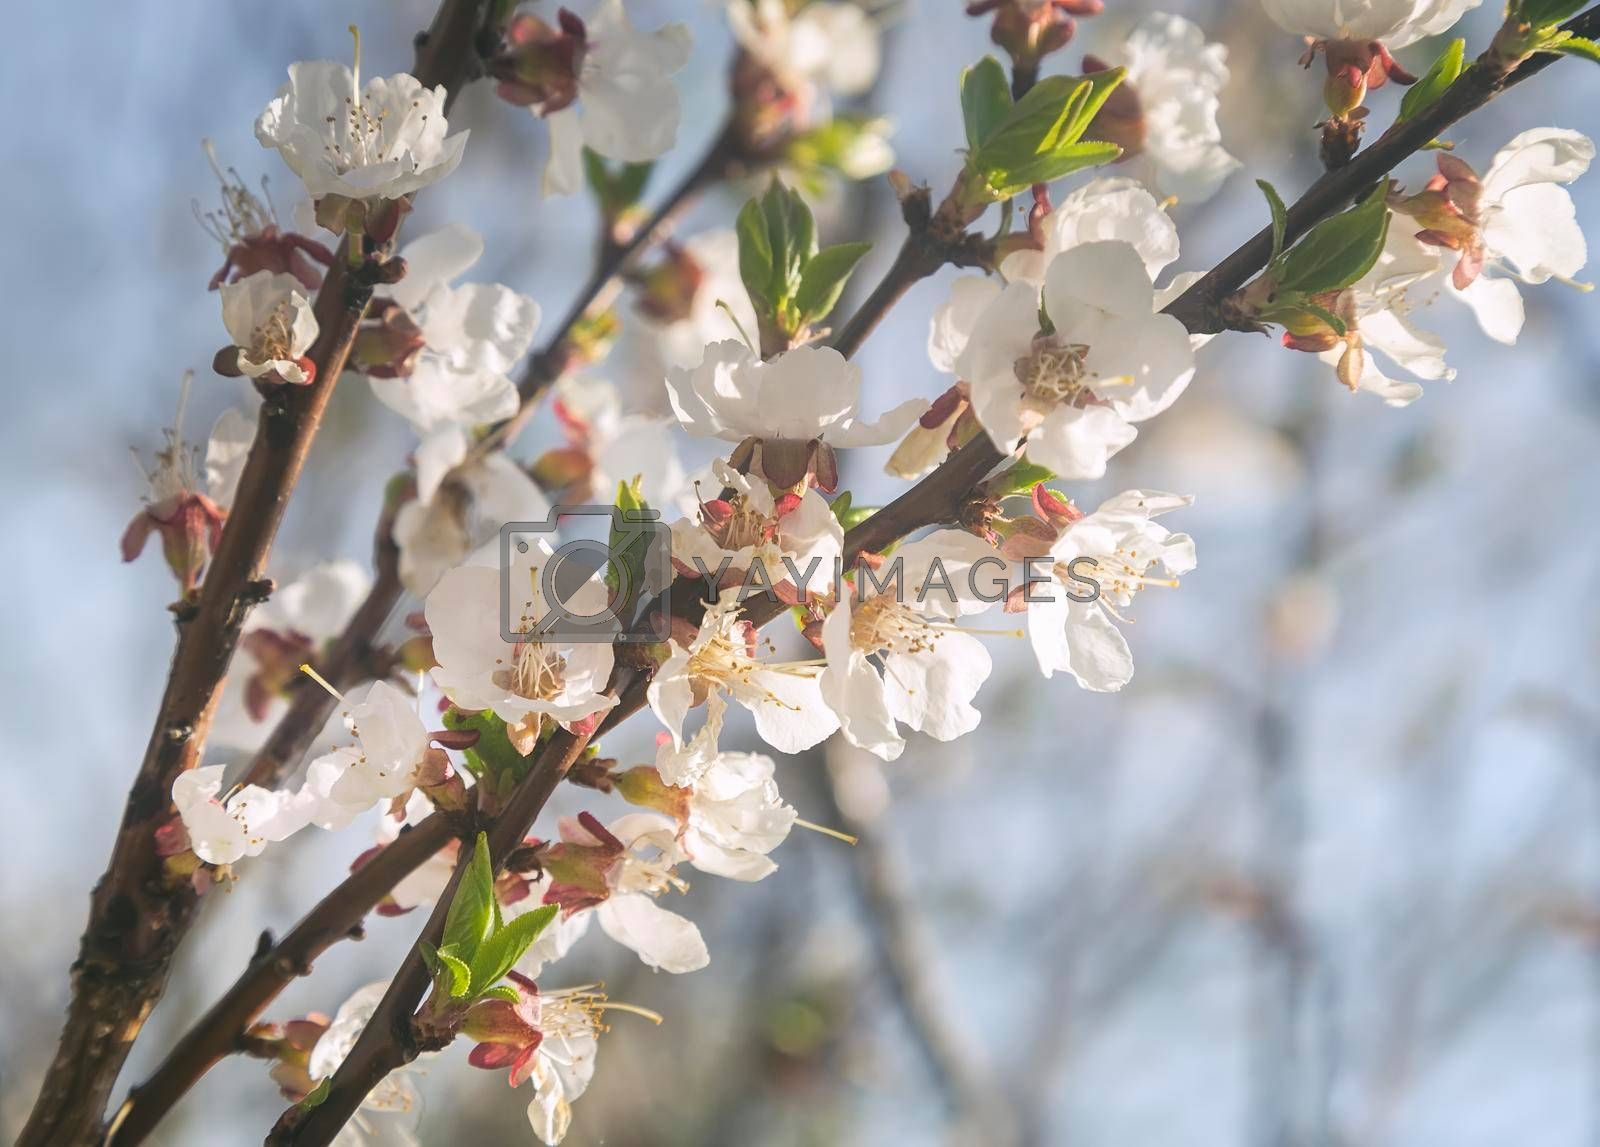 Royalty free image of A branch of a blooming apricot against the blue sky. by georgina198